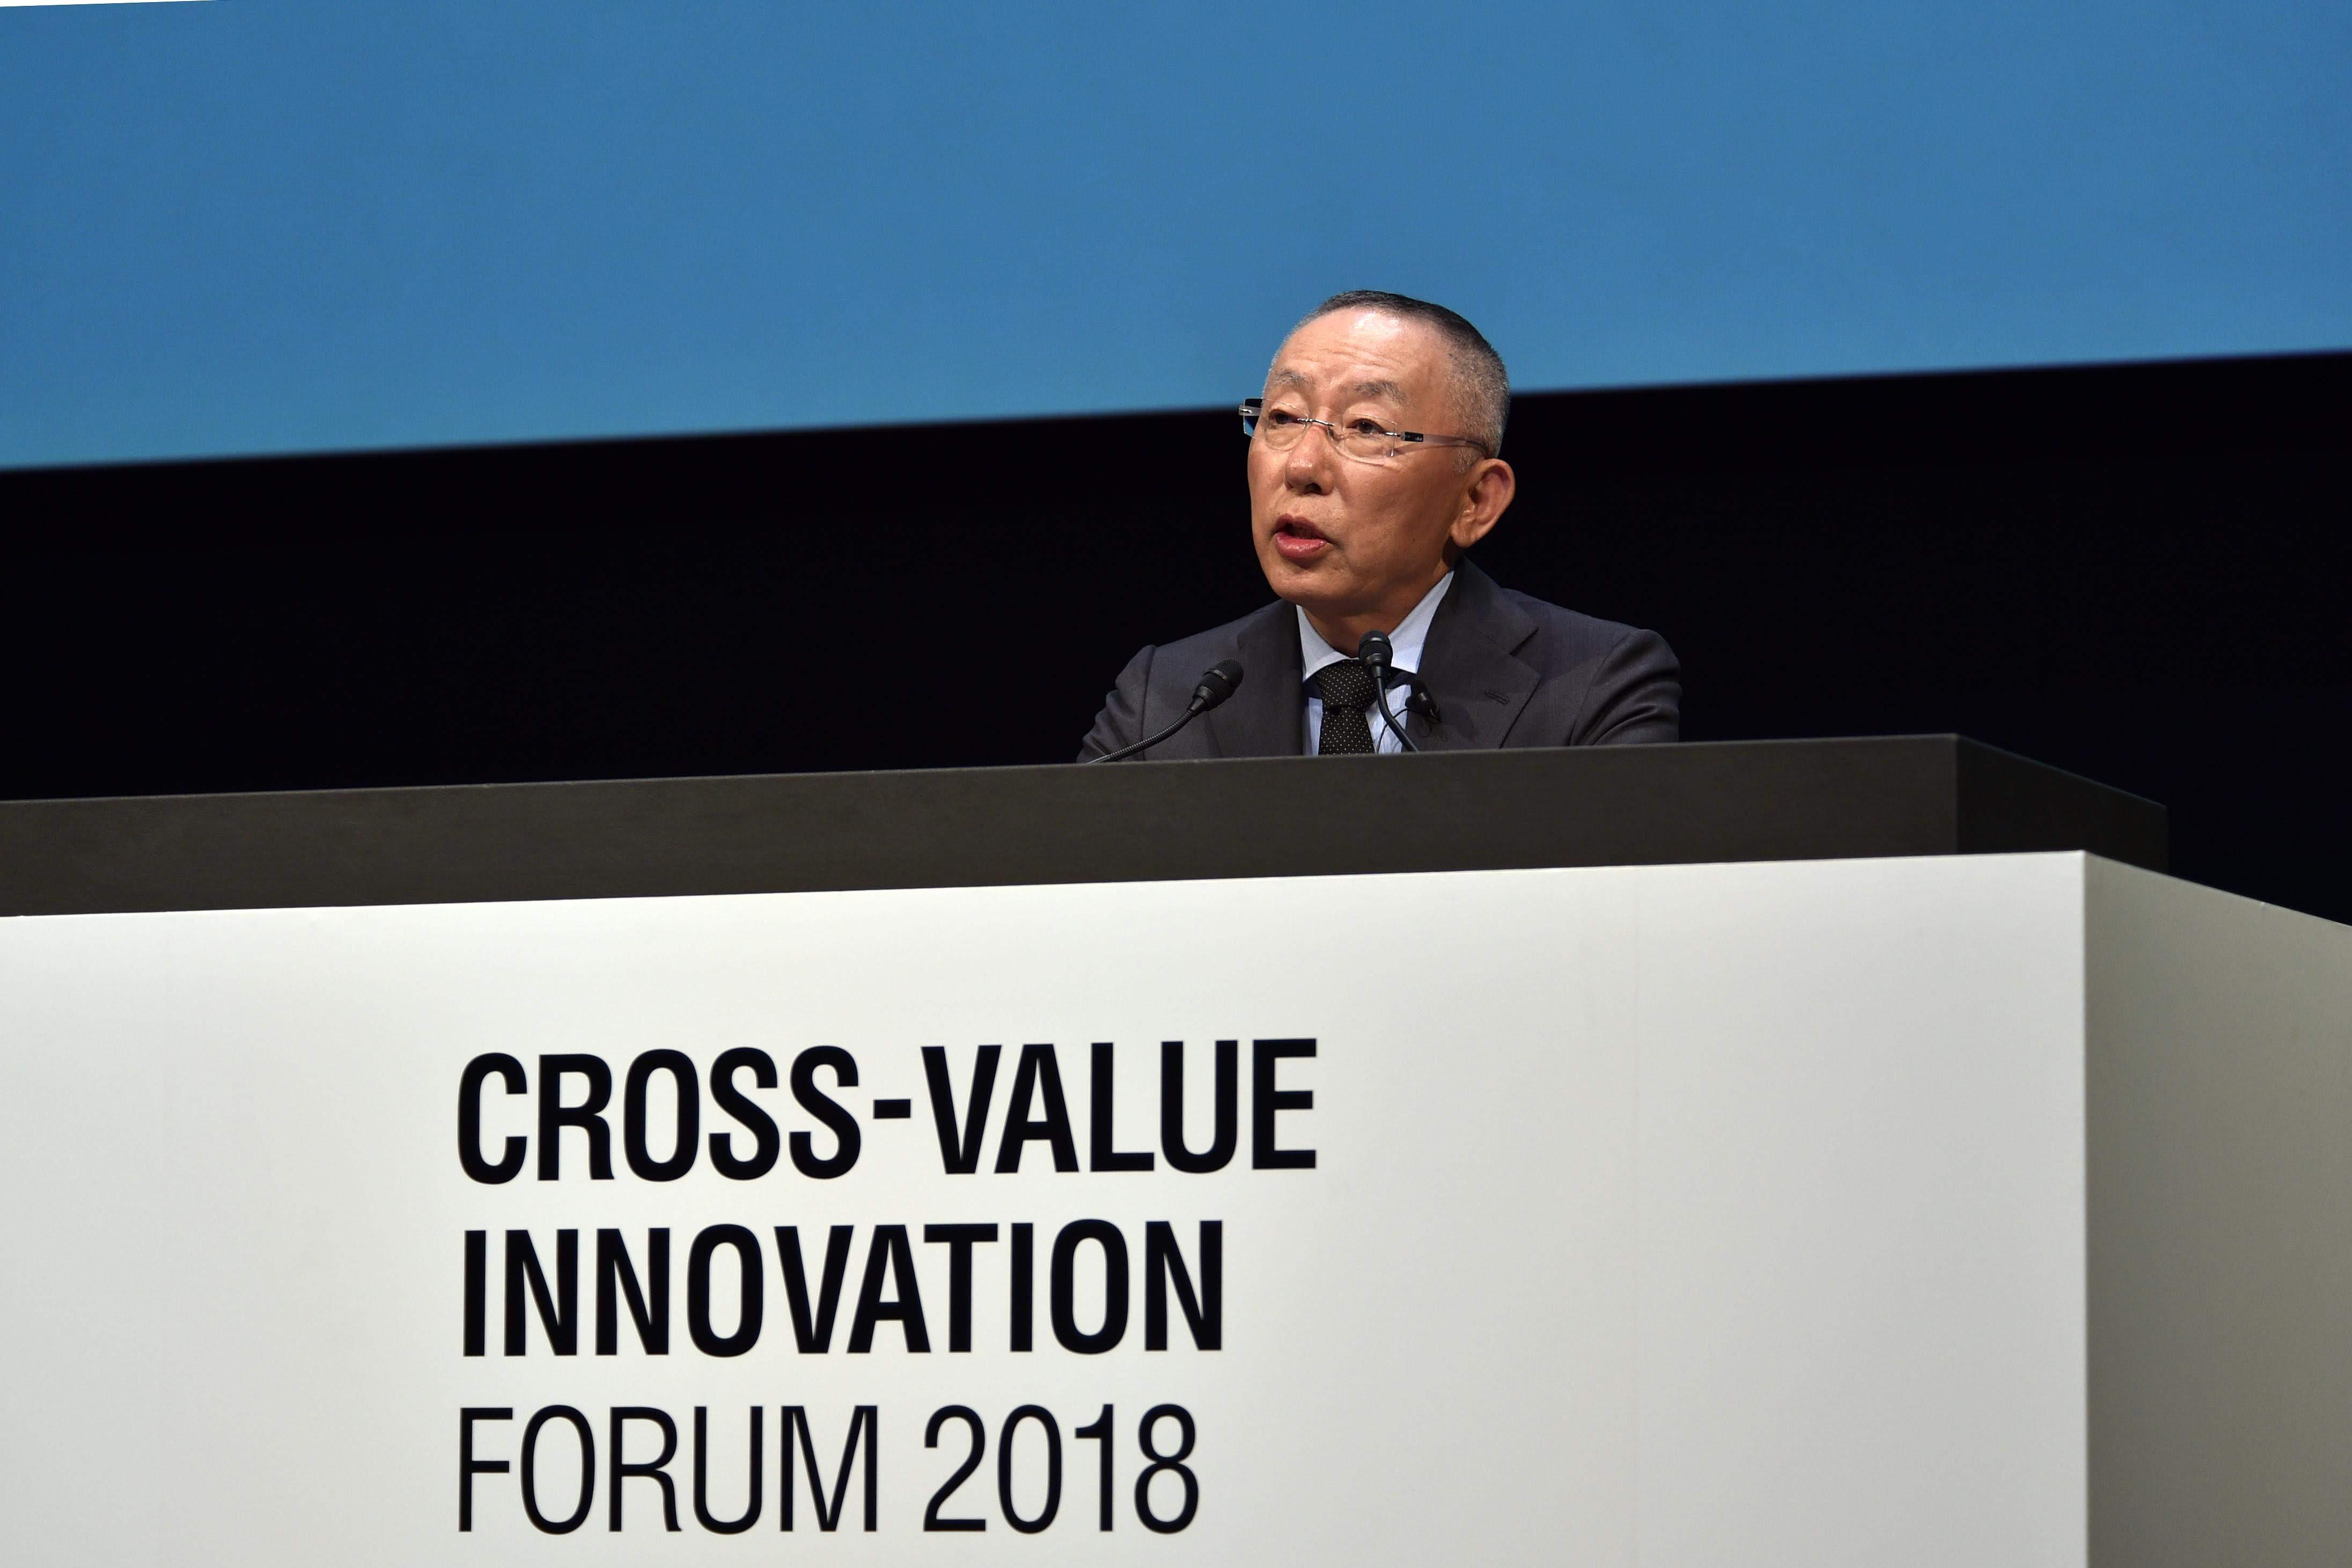 Global Keynote Lecture: Foresee Global Change and How Companies Should Change / グローバルな変化を予見し、企業はどう変わるべきか